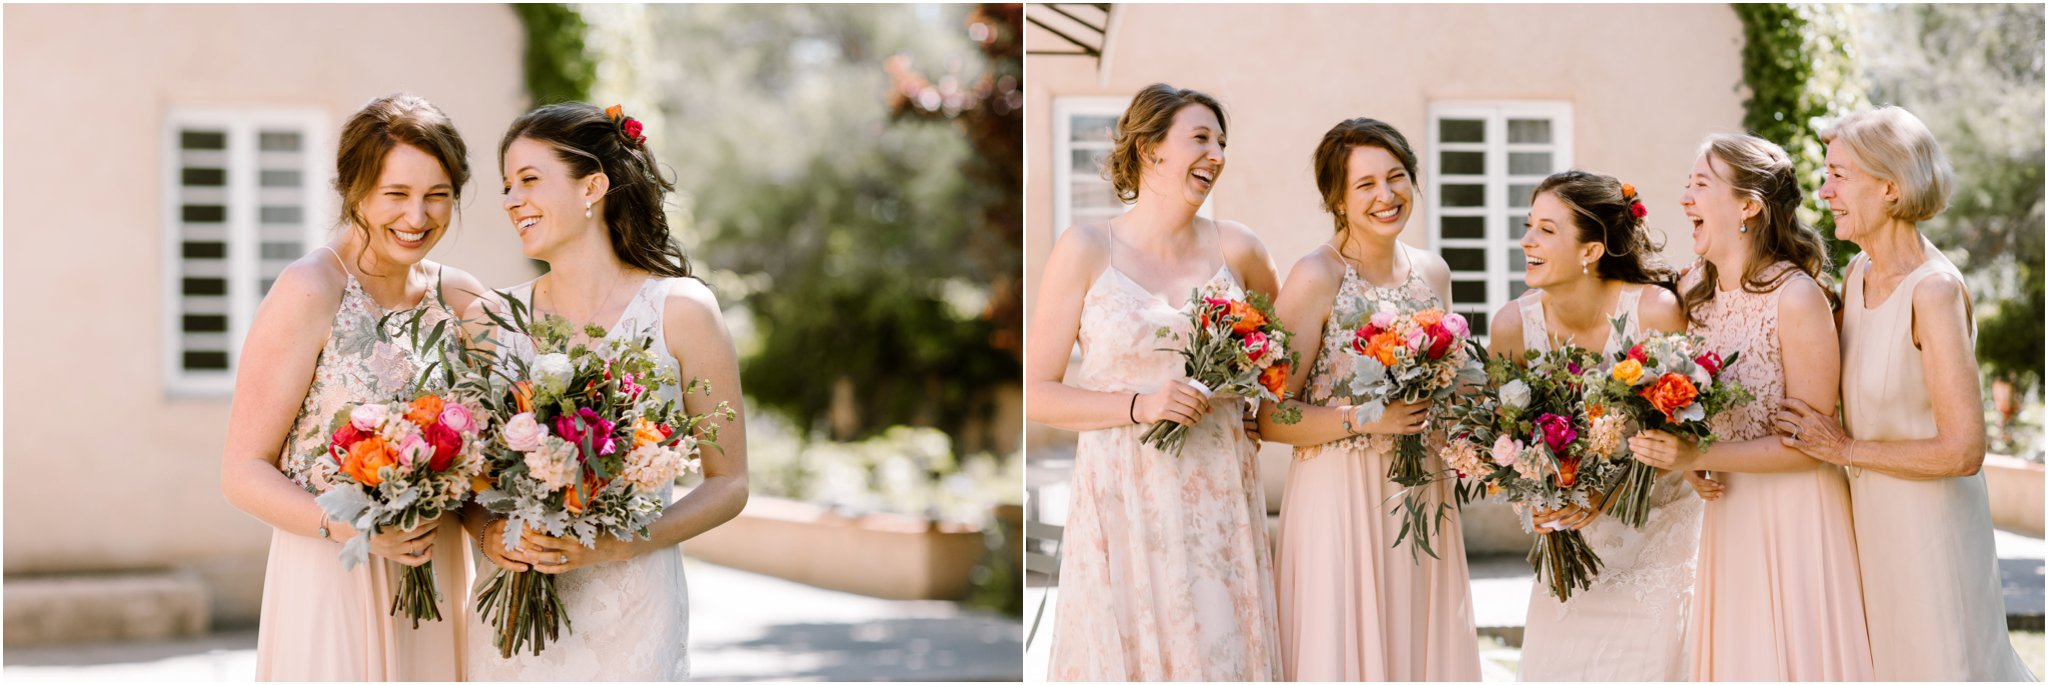 0251Los Poblanos Weddings Blue Rose Photography Studios